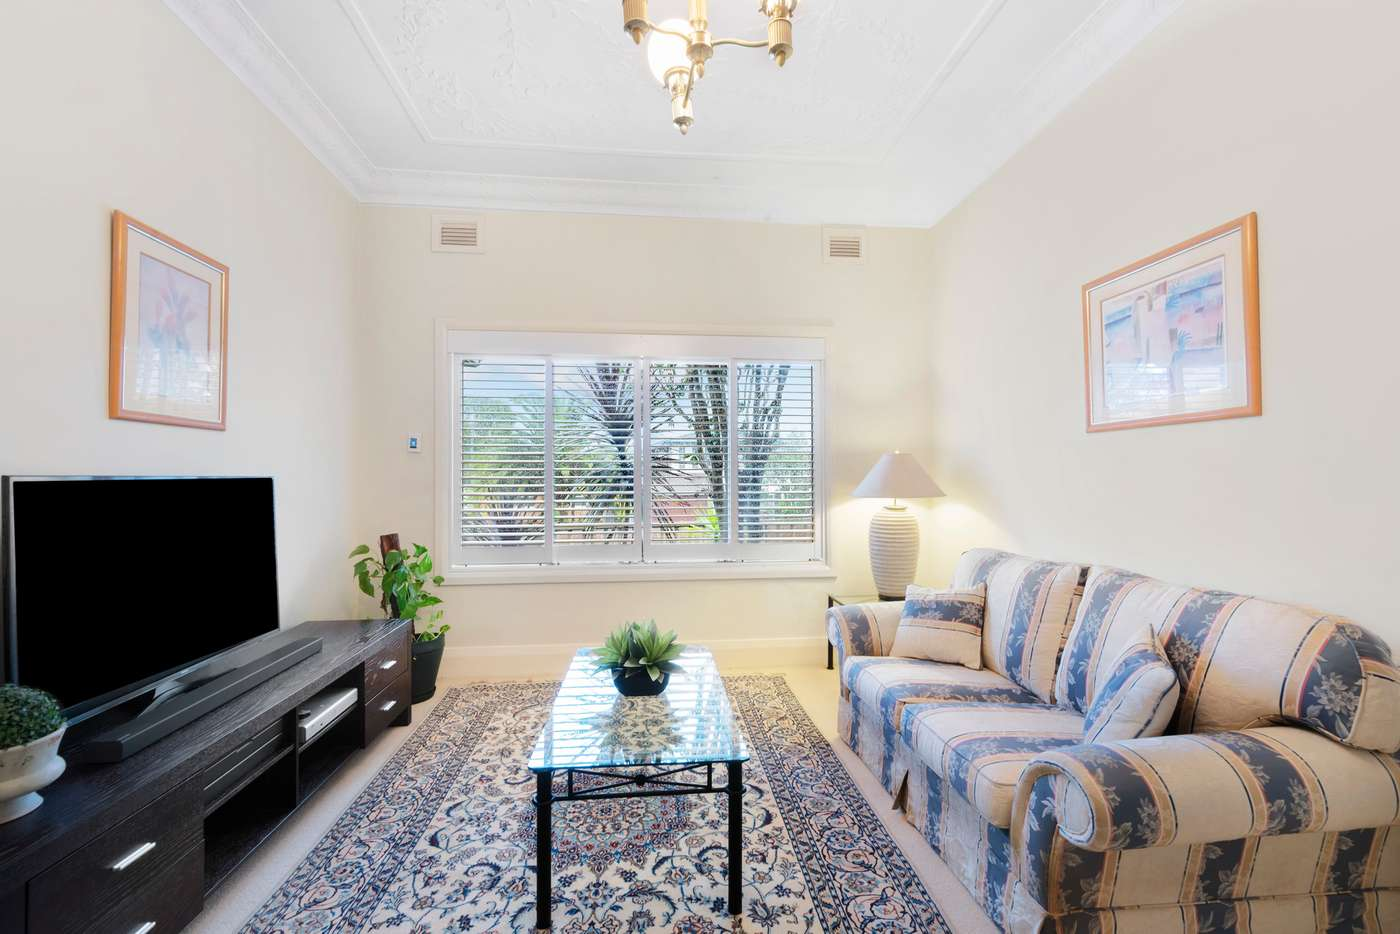 Sixth view of Homely house listing, 66 Flavelle Street, Concord NSW 2137